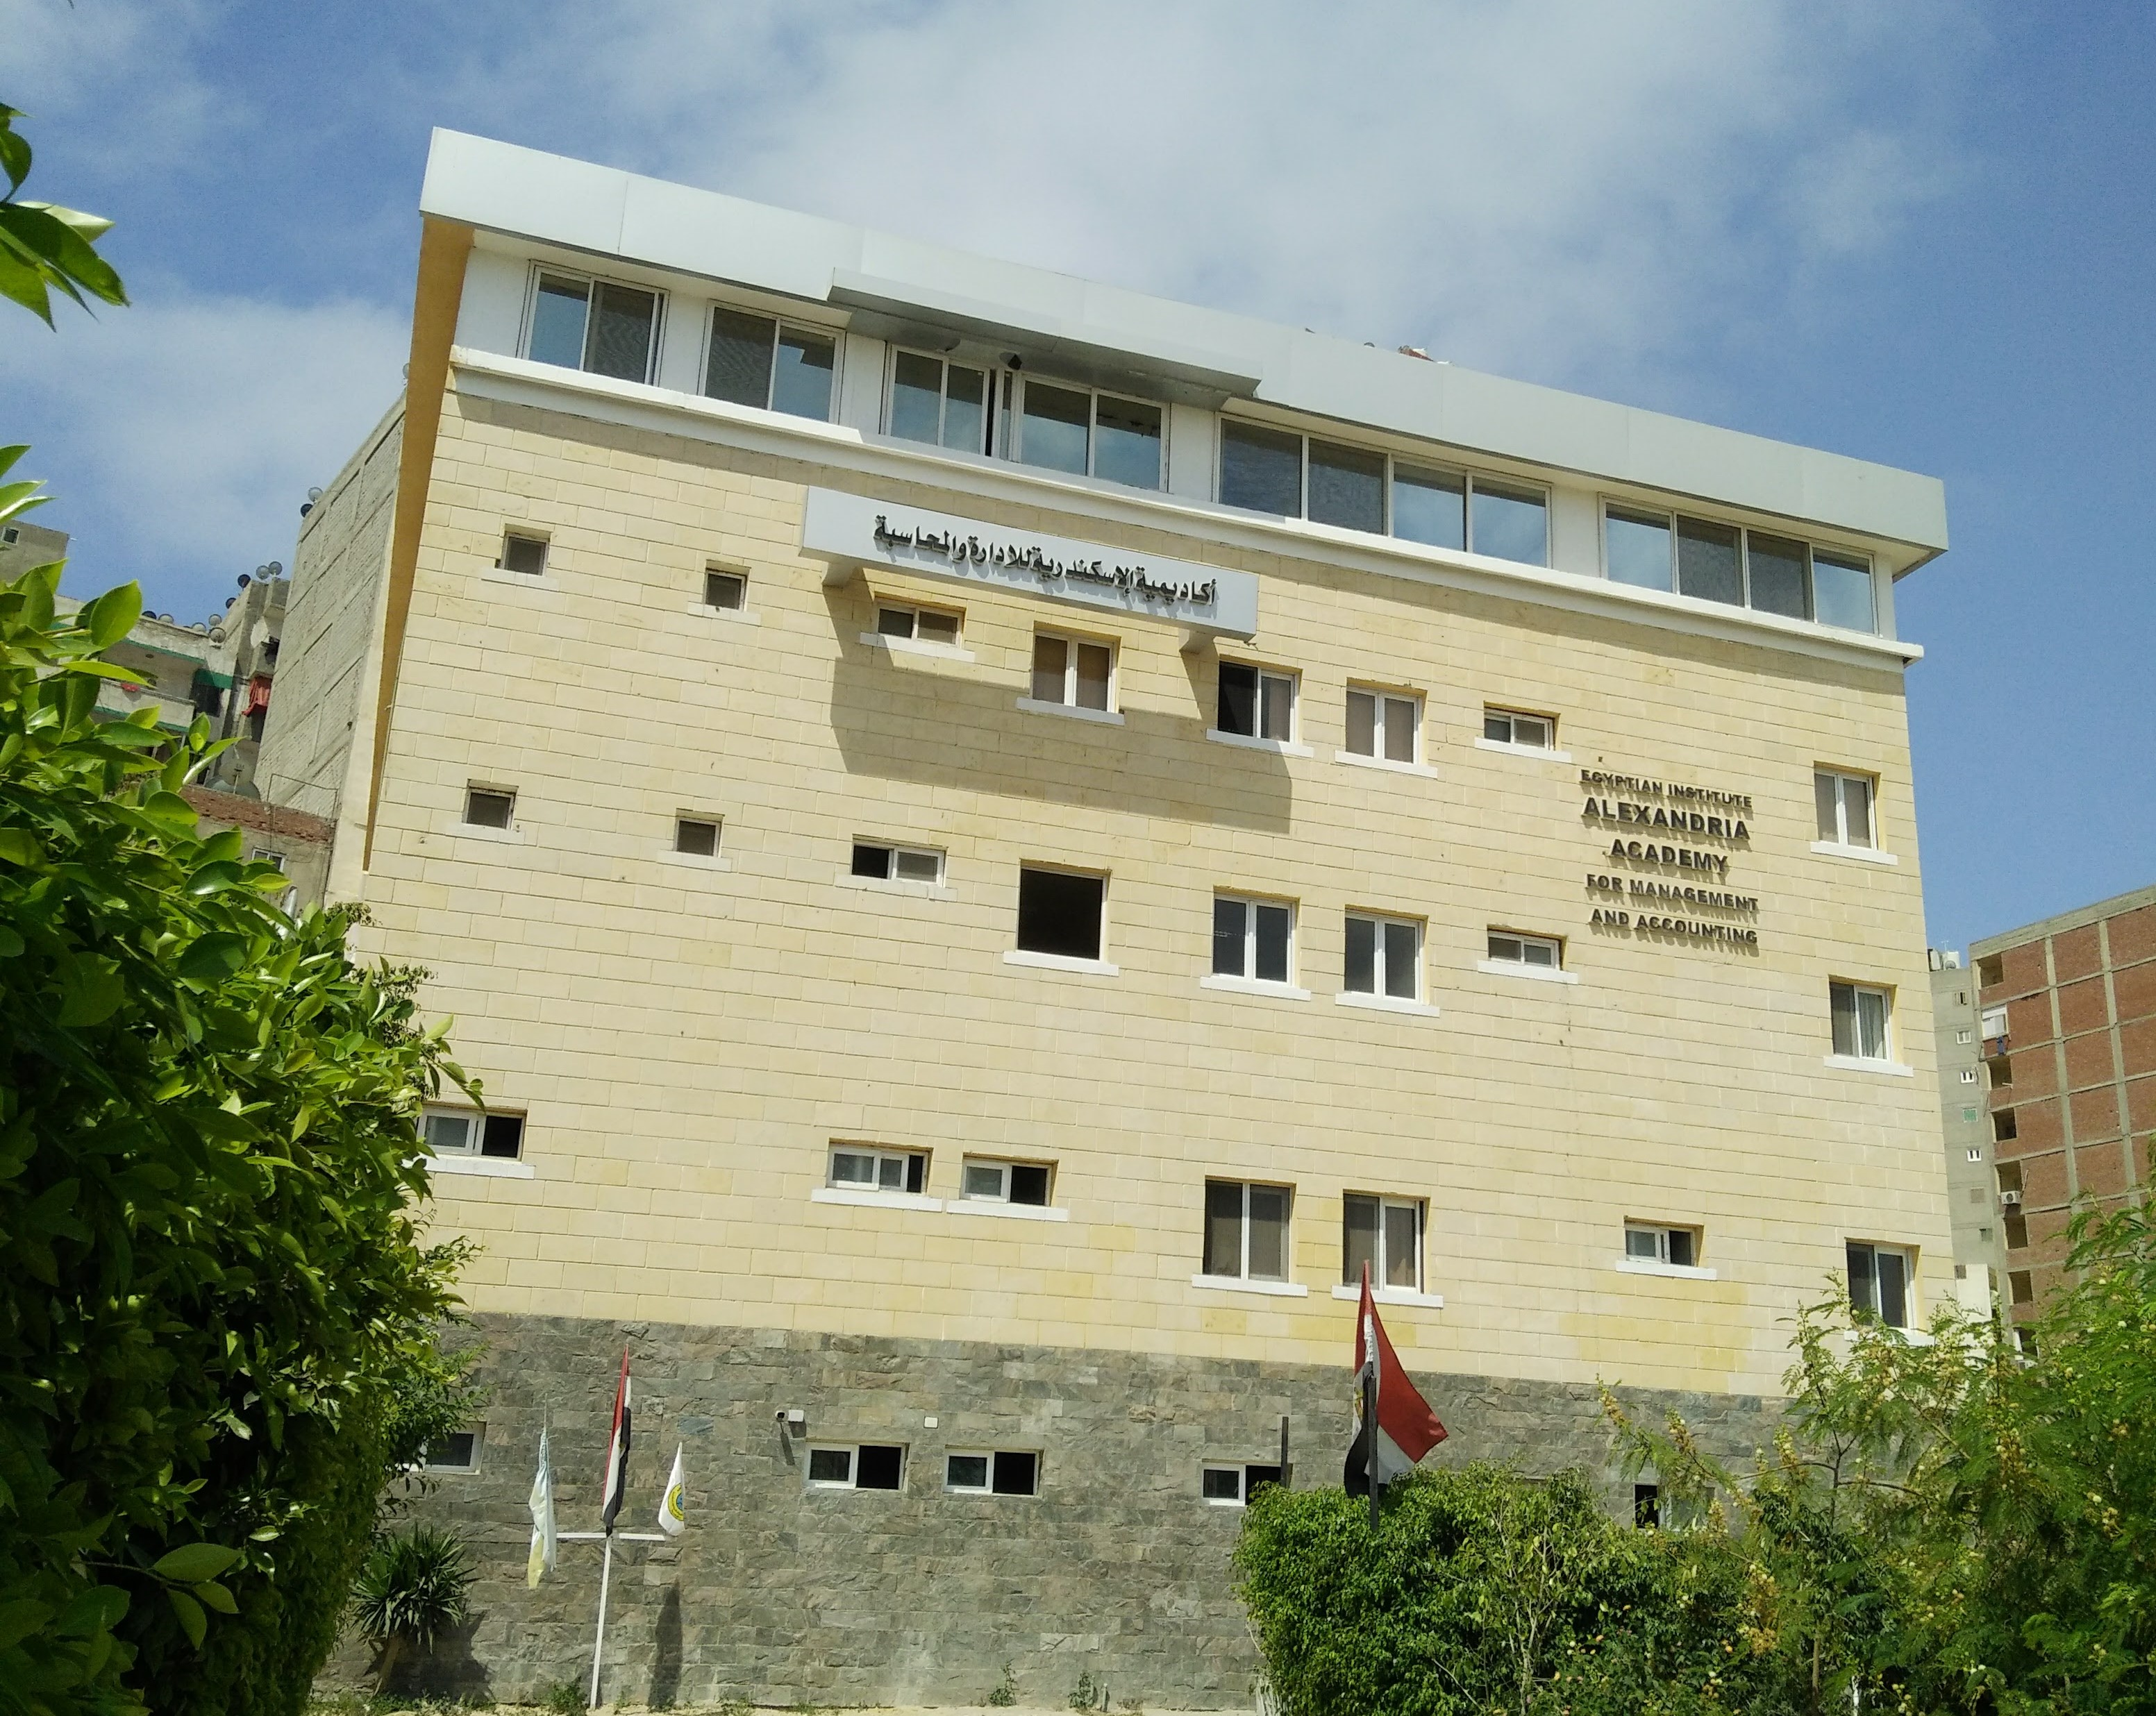 The Egyptian Institute of Alexandria Academy for Management and Accounting